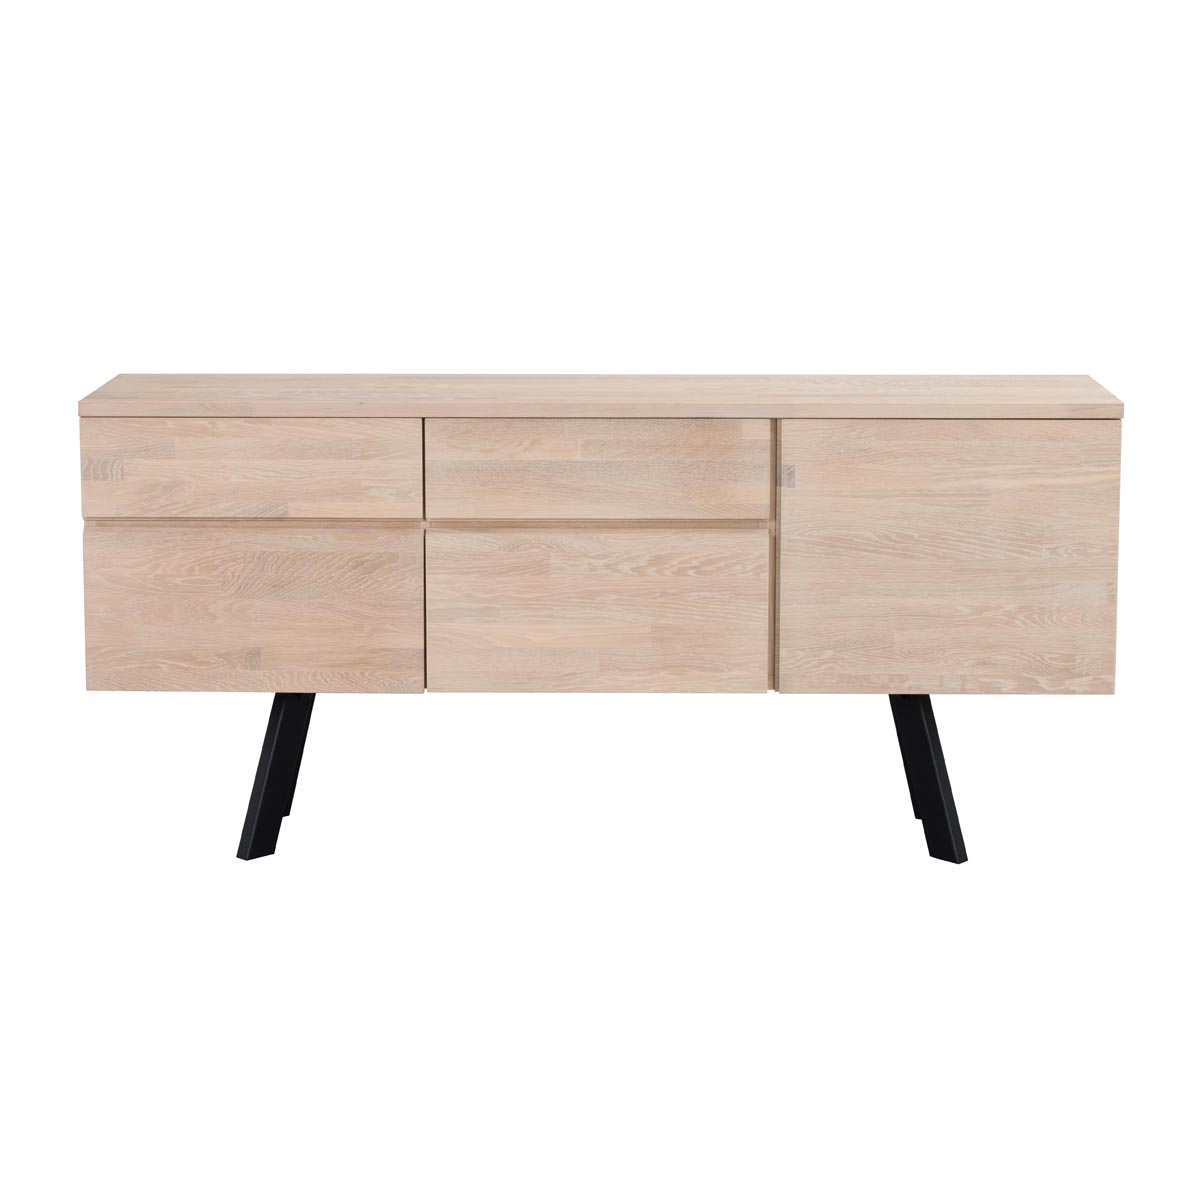 Fred sideboard ww R-117421_b